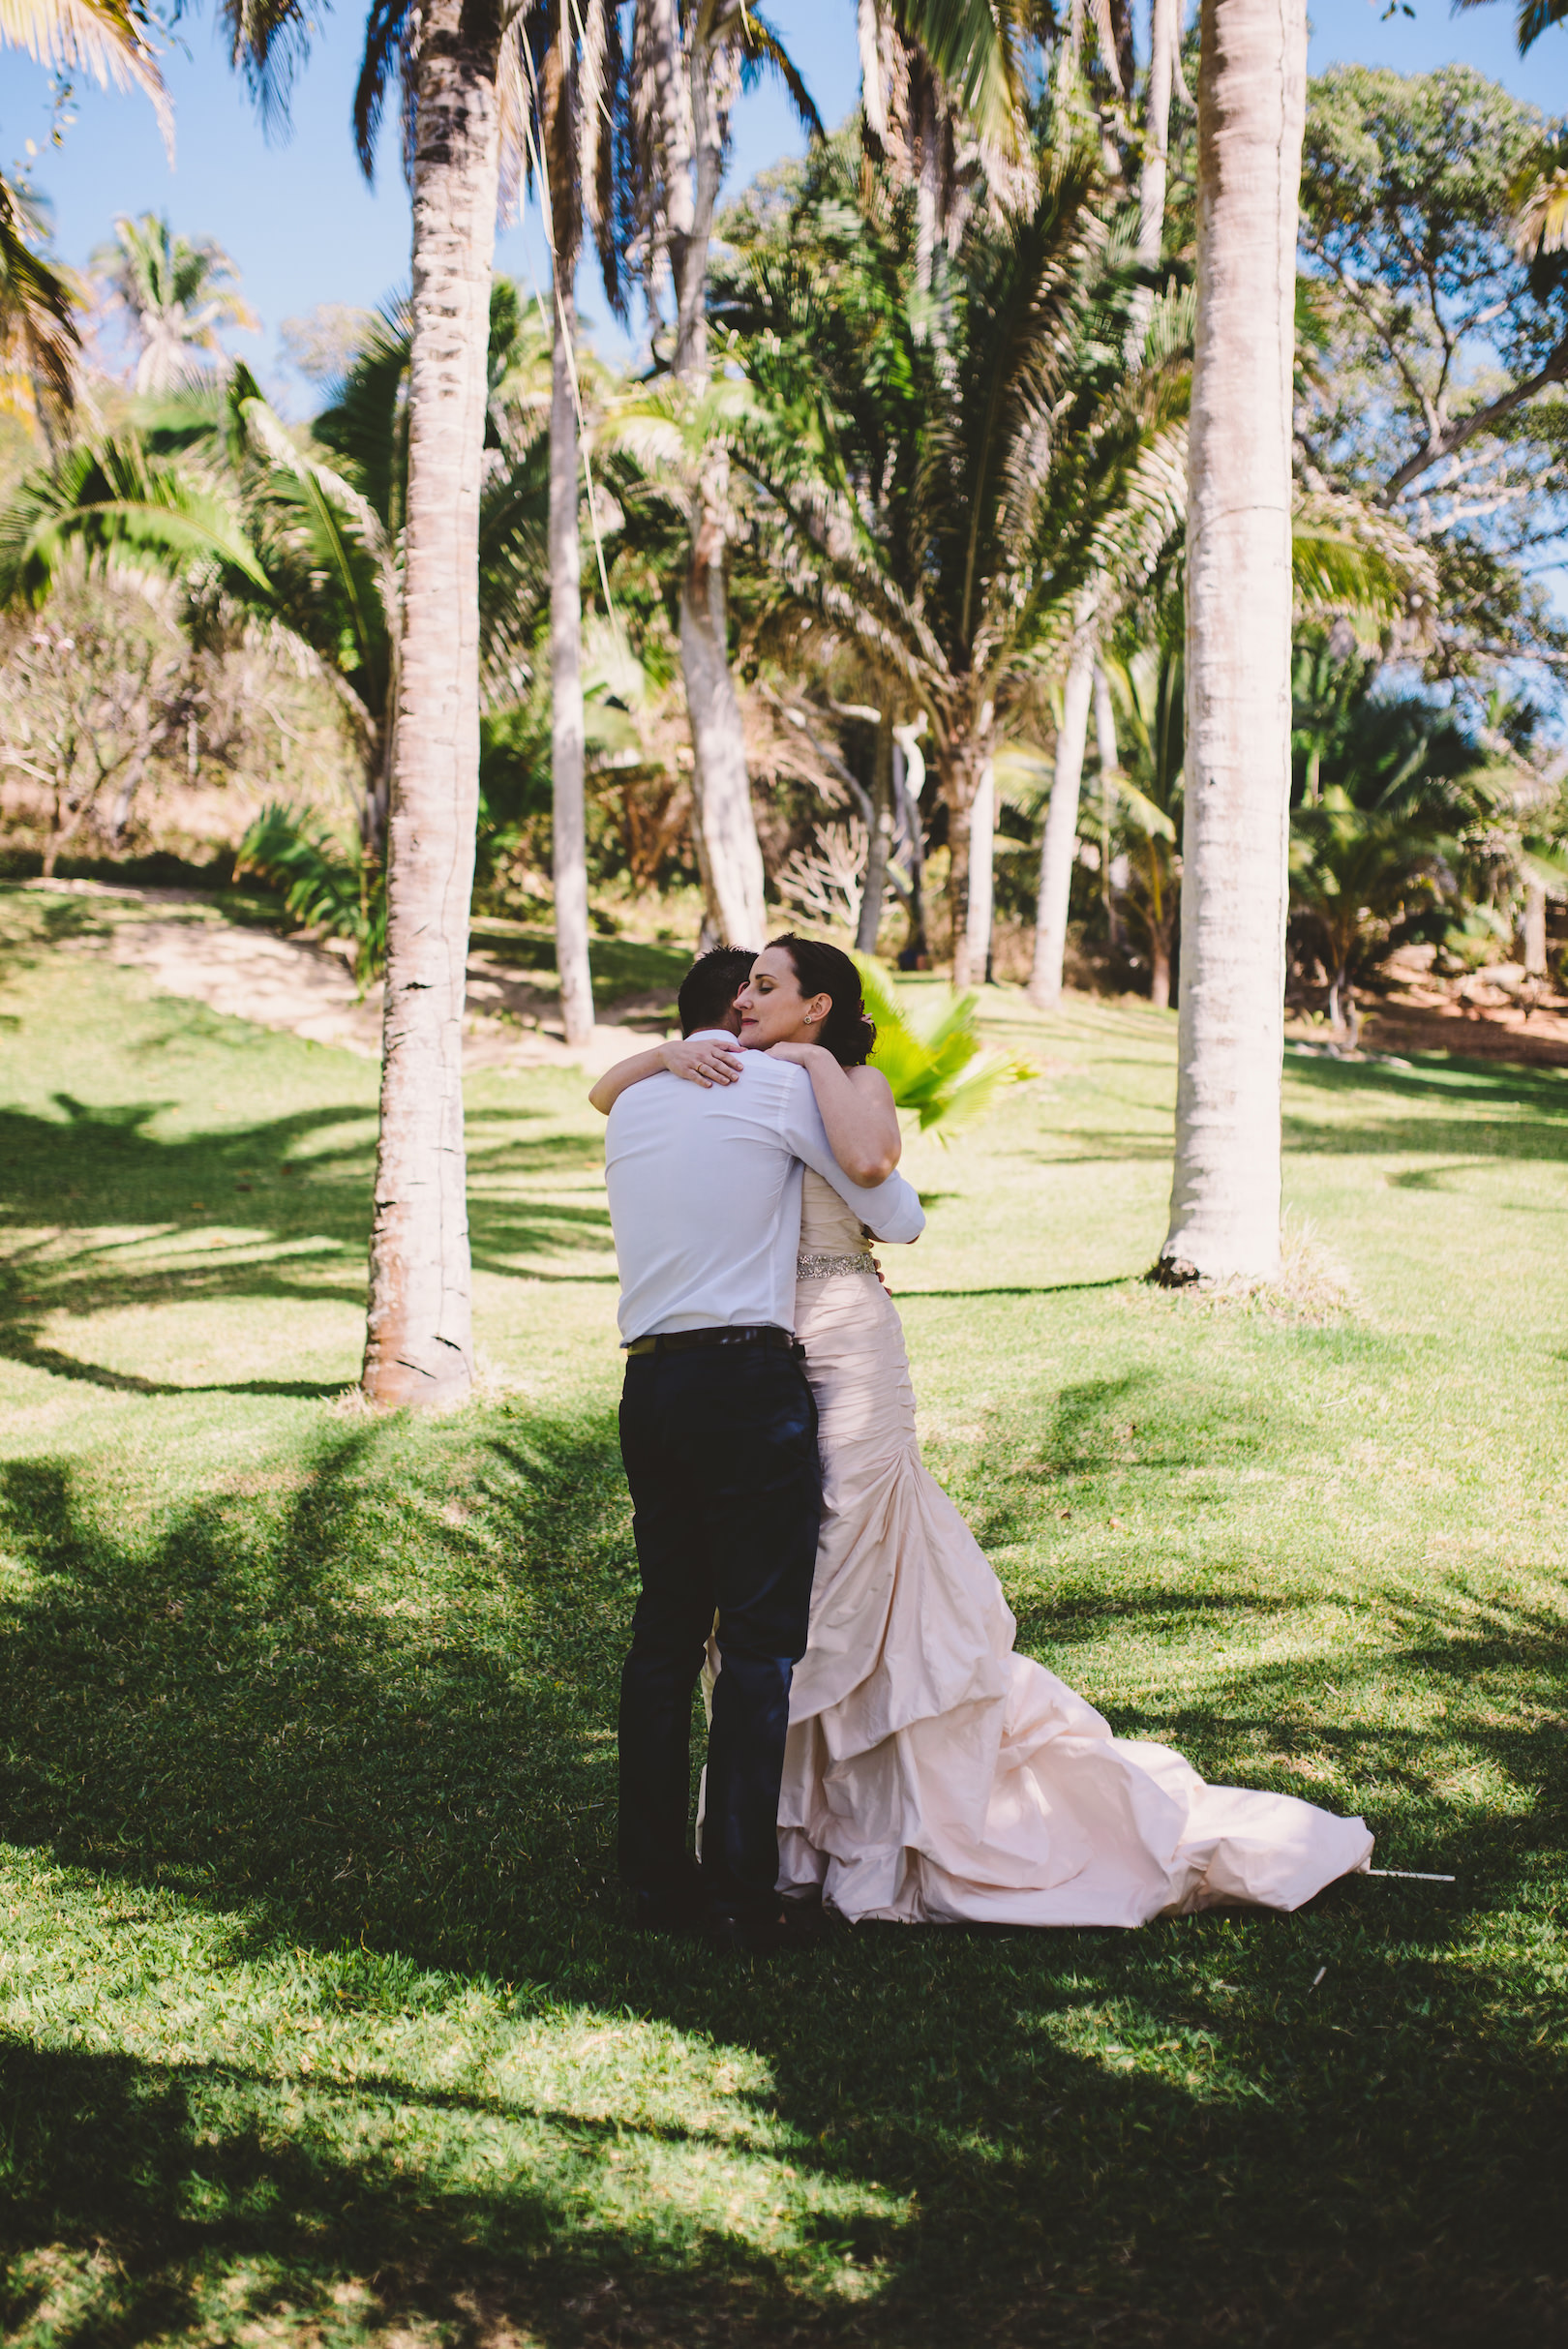 Steve & Mika - Sayulita - © Dallas Kolotylo Photography - 344